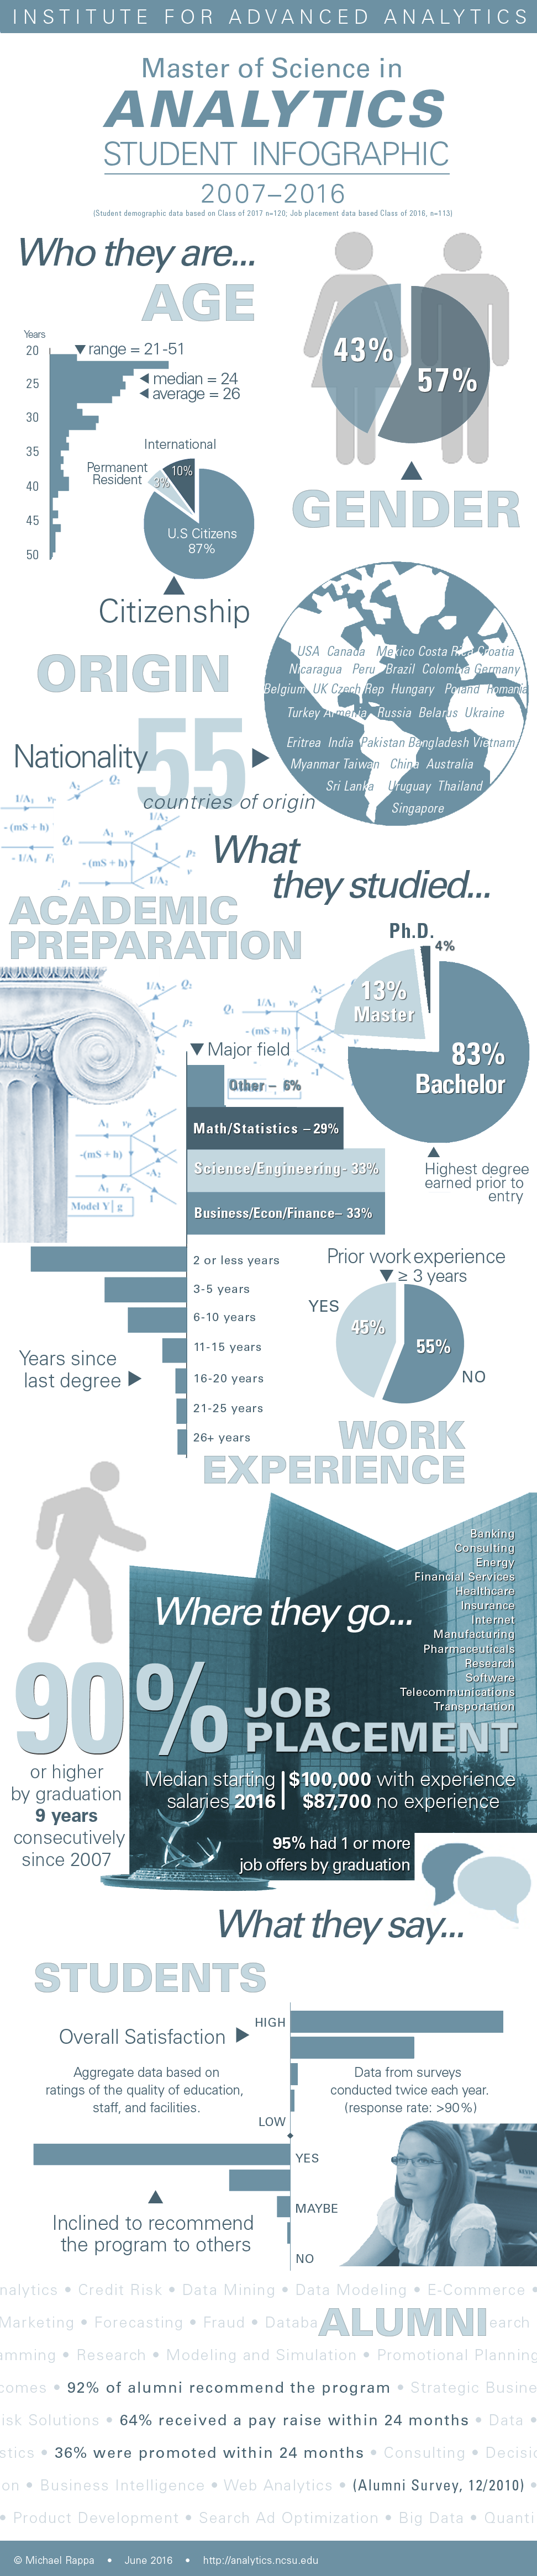 Master of Science in Analytics Student Infographic